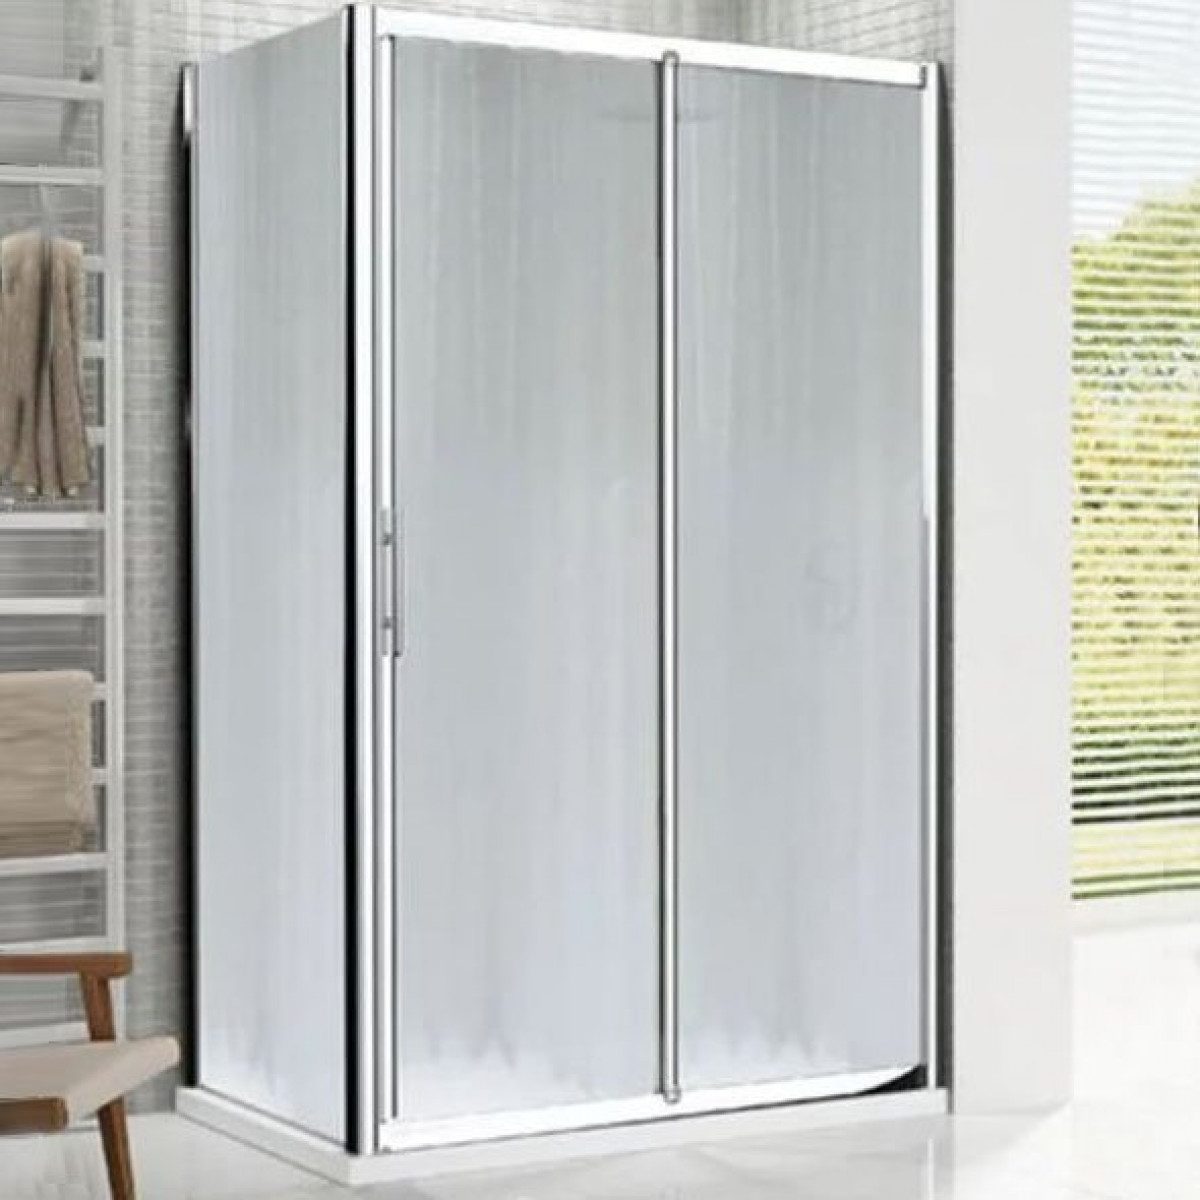 Novellini lunes 1300mm 2p sliding shower door lunes2p126 for 1300 sliding shower door